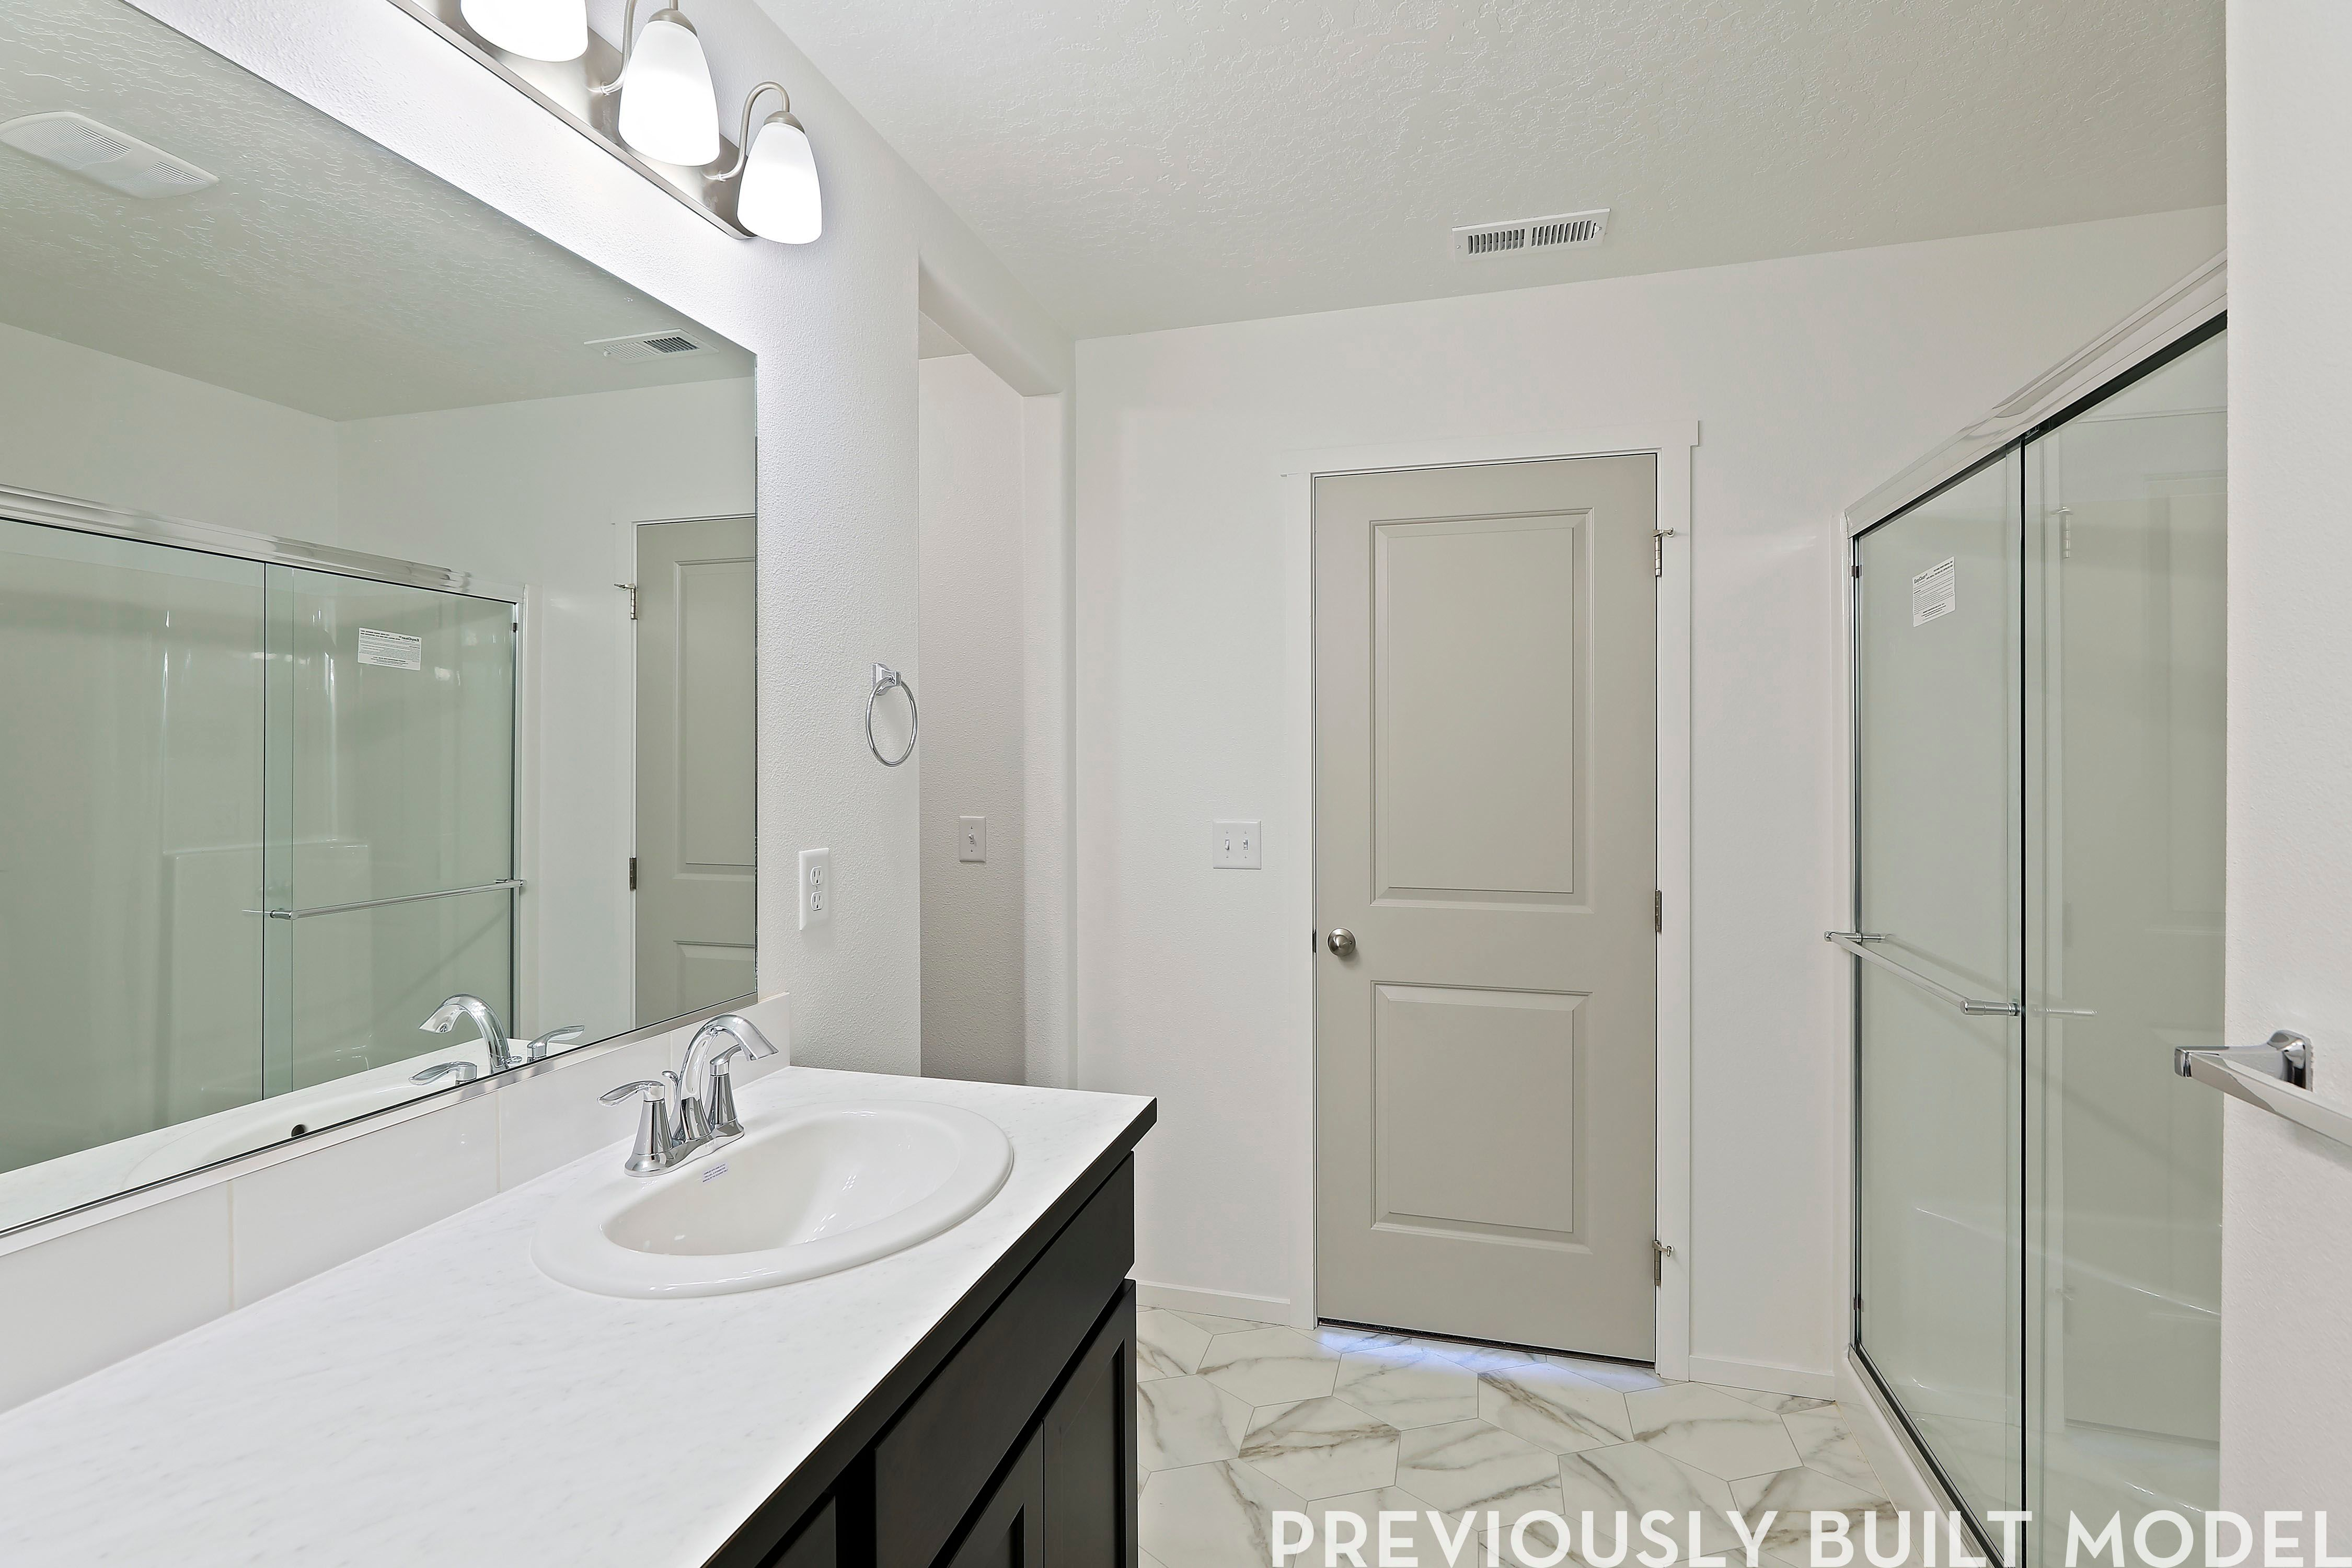 Bathroom featured in The Cambridge 1416 By RYN Built Homes in Richland, WA